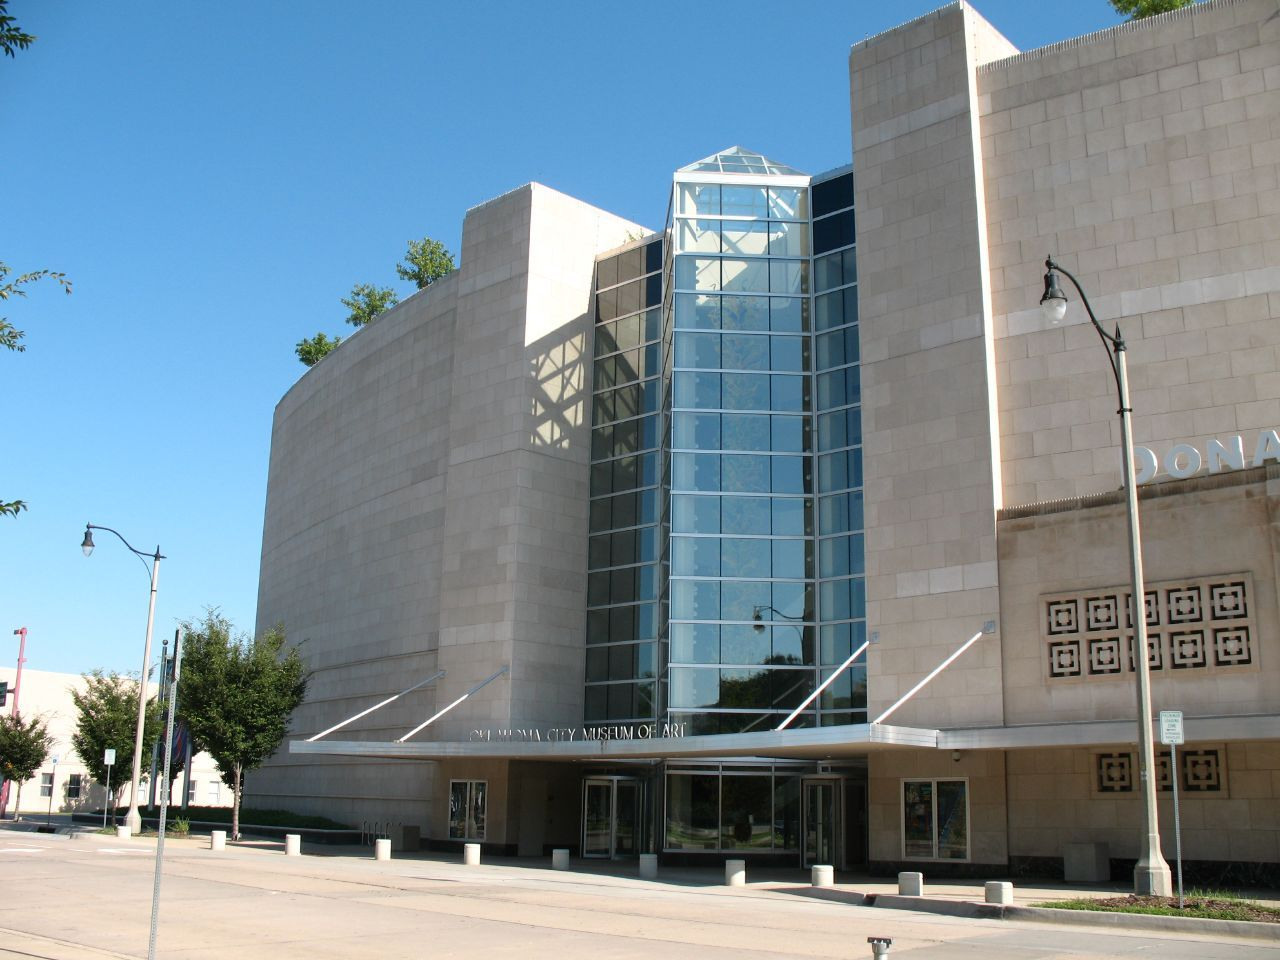 The Oklahoma City Museum of Art was founded in 1989 and built this building in 2002.